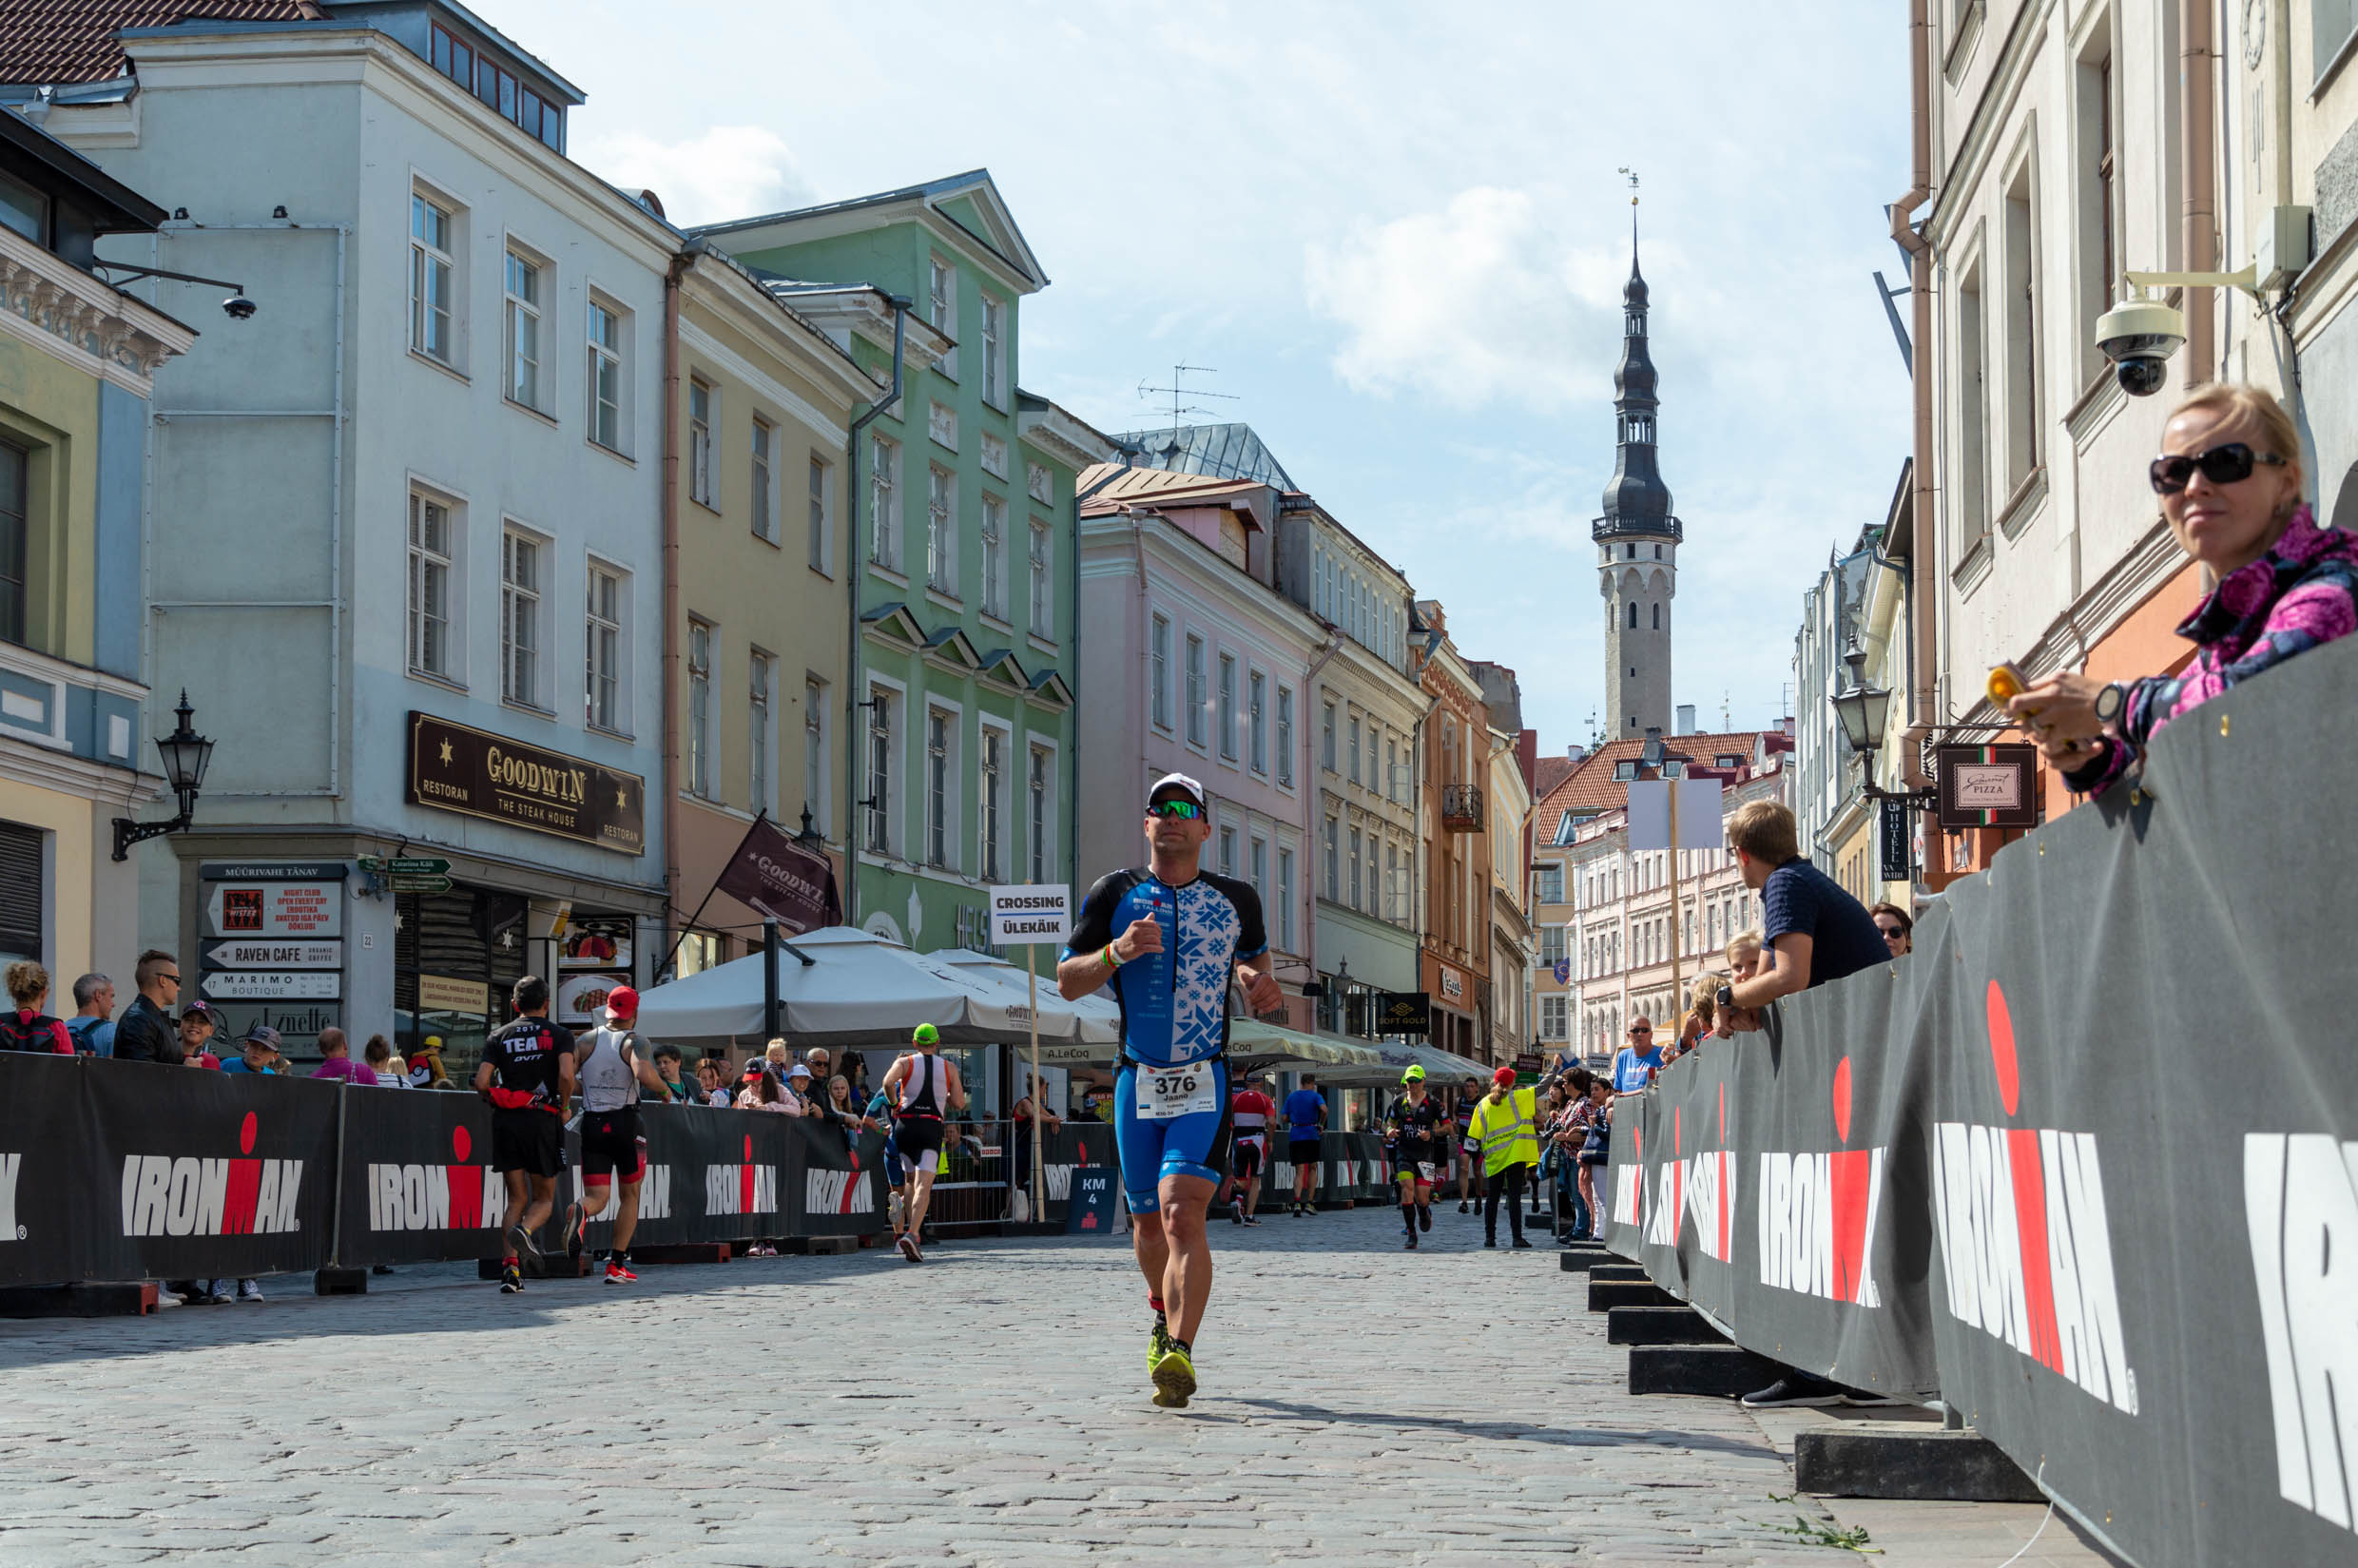 IRONMAN 70.3 Tallinn athletes running through the city of colorful houses and spectator standing on the side and cheering them on